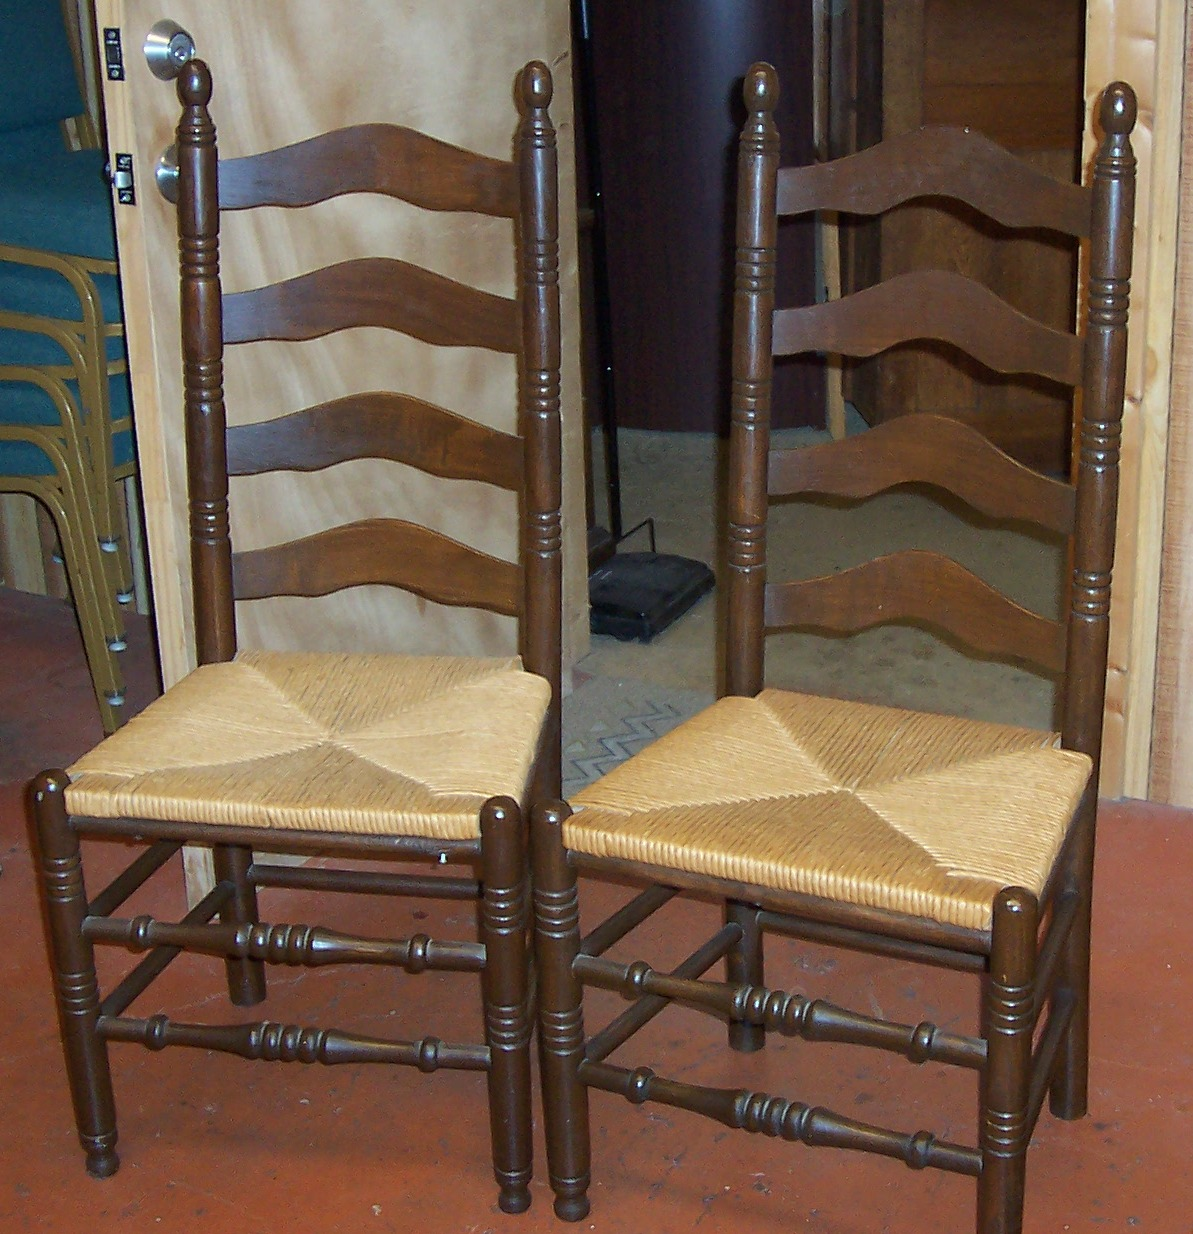 ladderback chairs set of 2 for sale classifieds. Black Bedroom Furniture Sets. Home Design Ideas